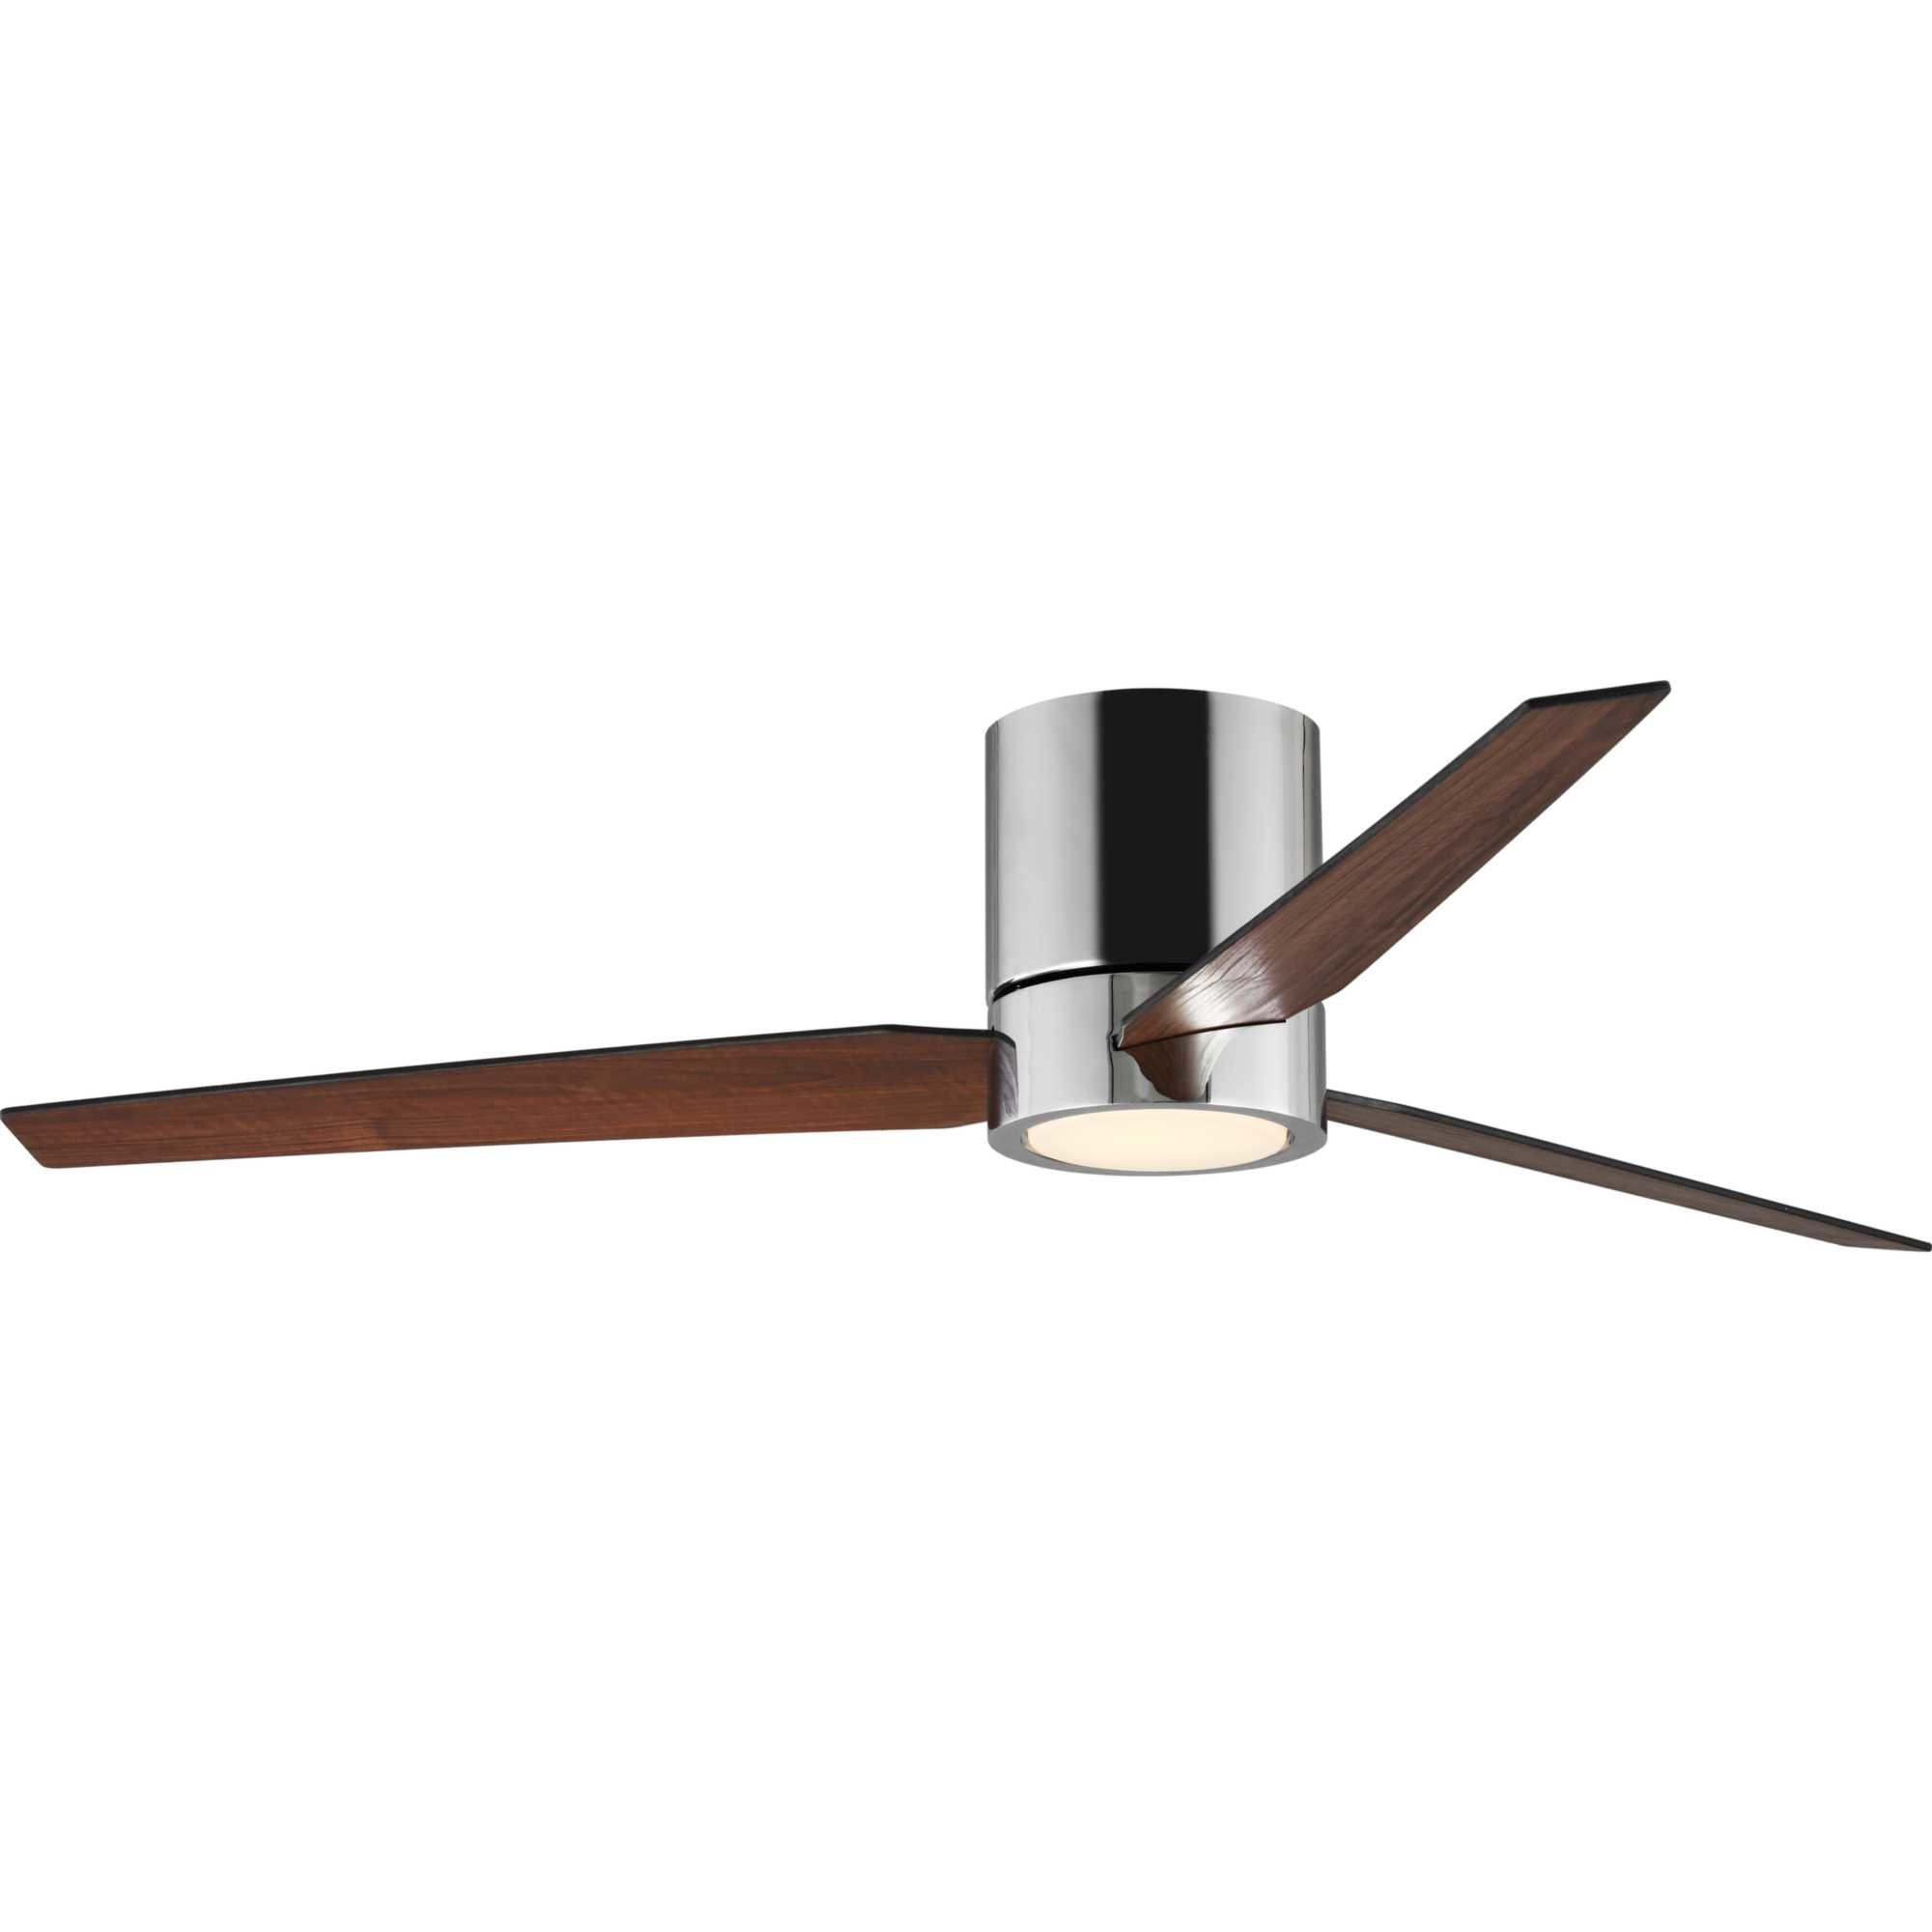 "Recent Windemere 5 Blade Ceiling Fans With Remote Pertaining To 56"" Tucker Hugger 3 Blade Led Ceiling Fan With Remote, Light Kit Included (View 13 of 20)"